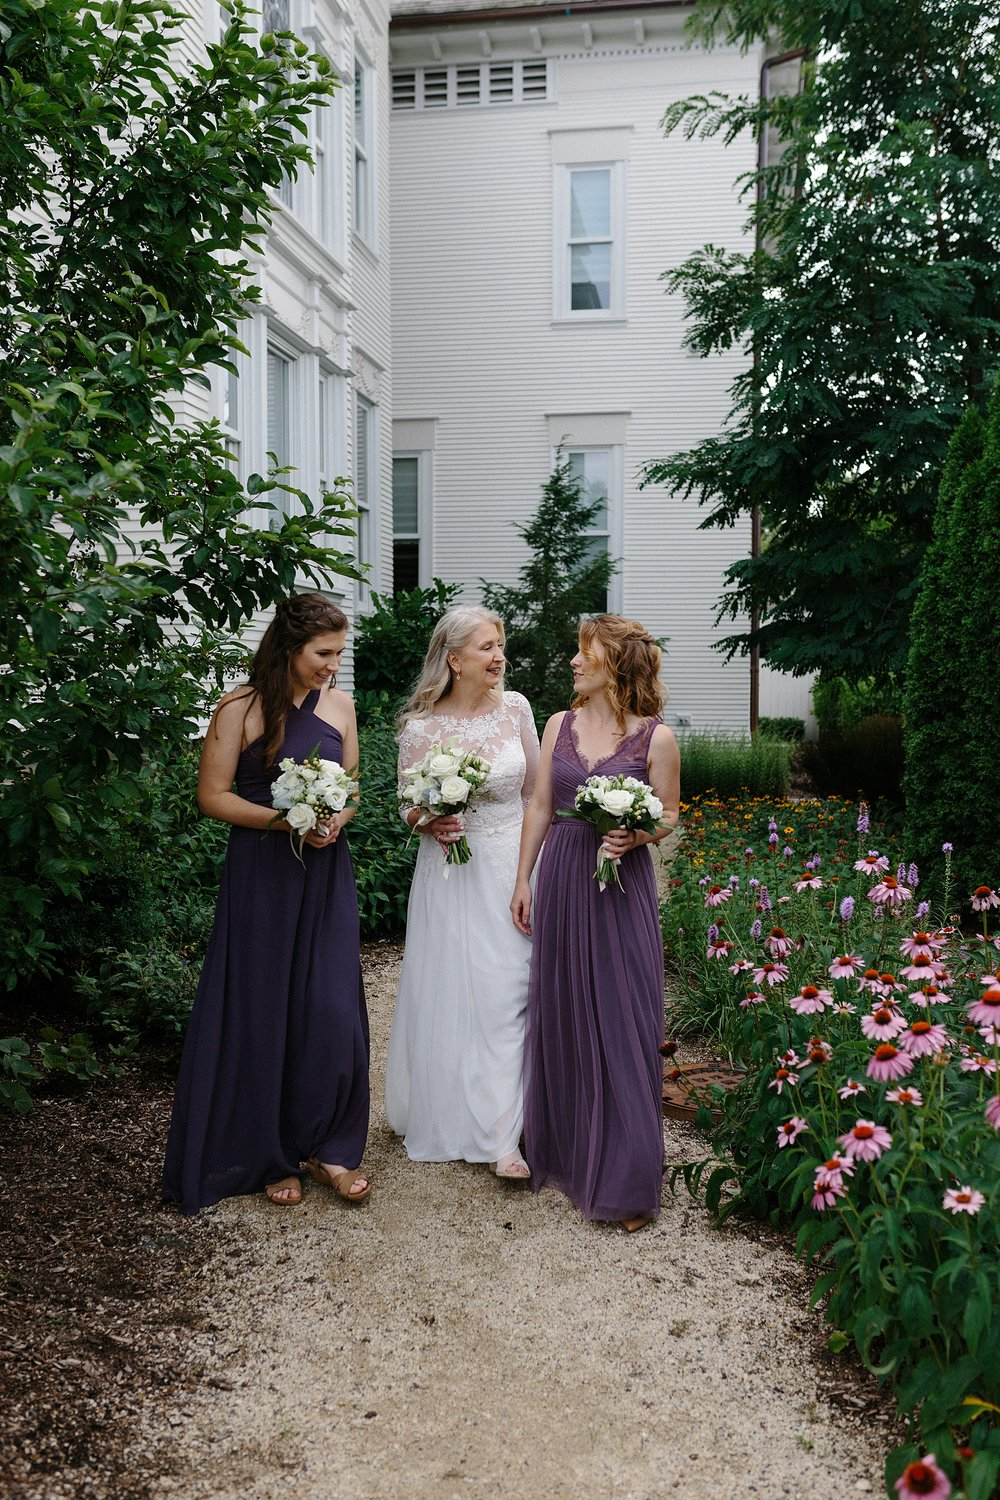 Floral Wedding Gown Purple Bridesmaid Gowns Chicago Wedding lisa kathan photography